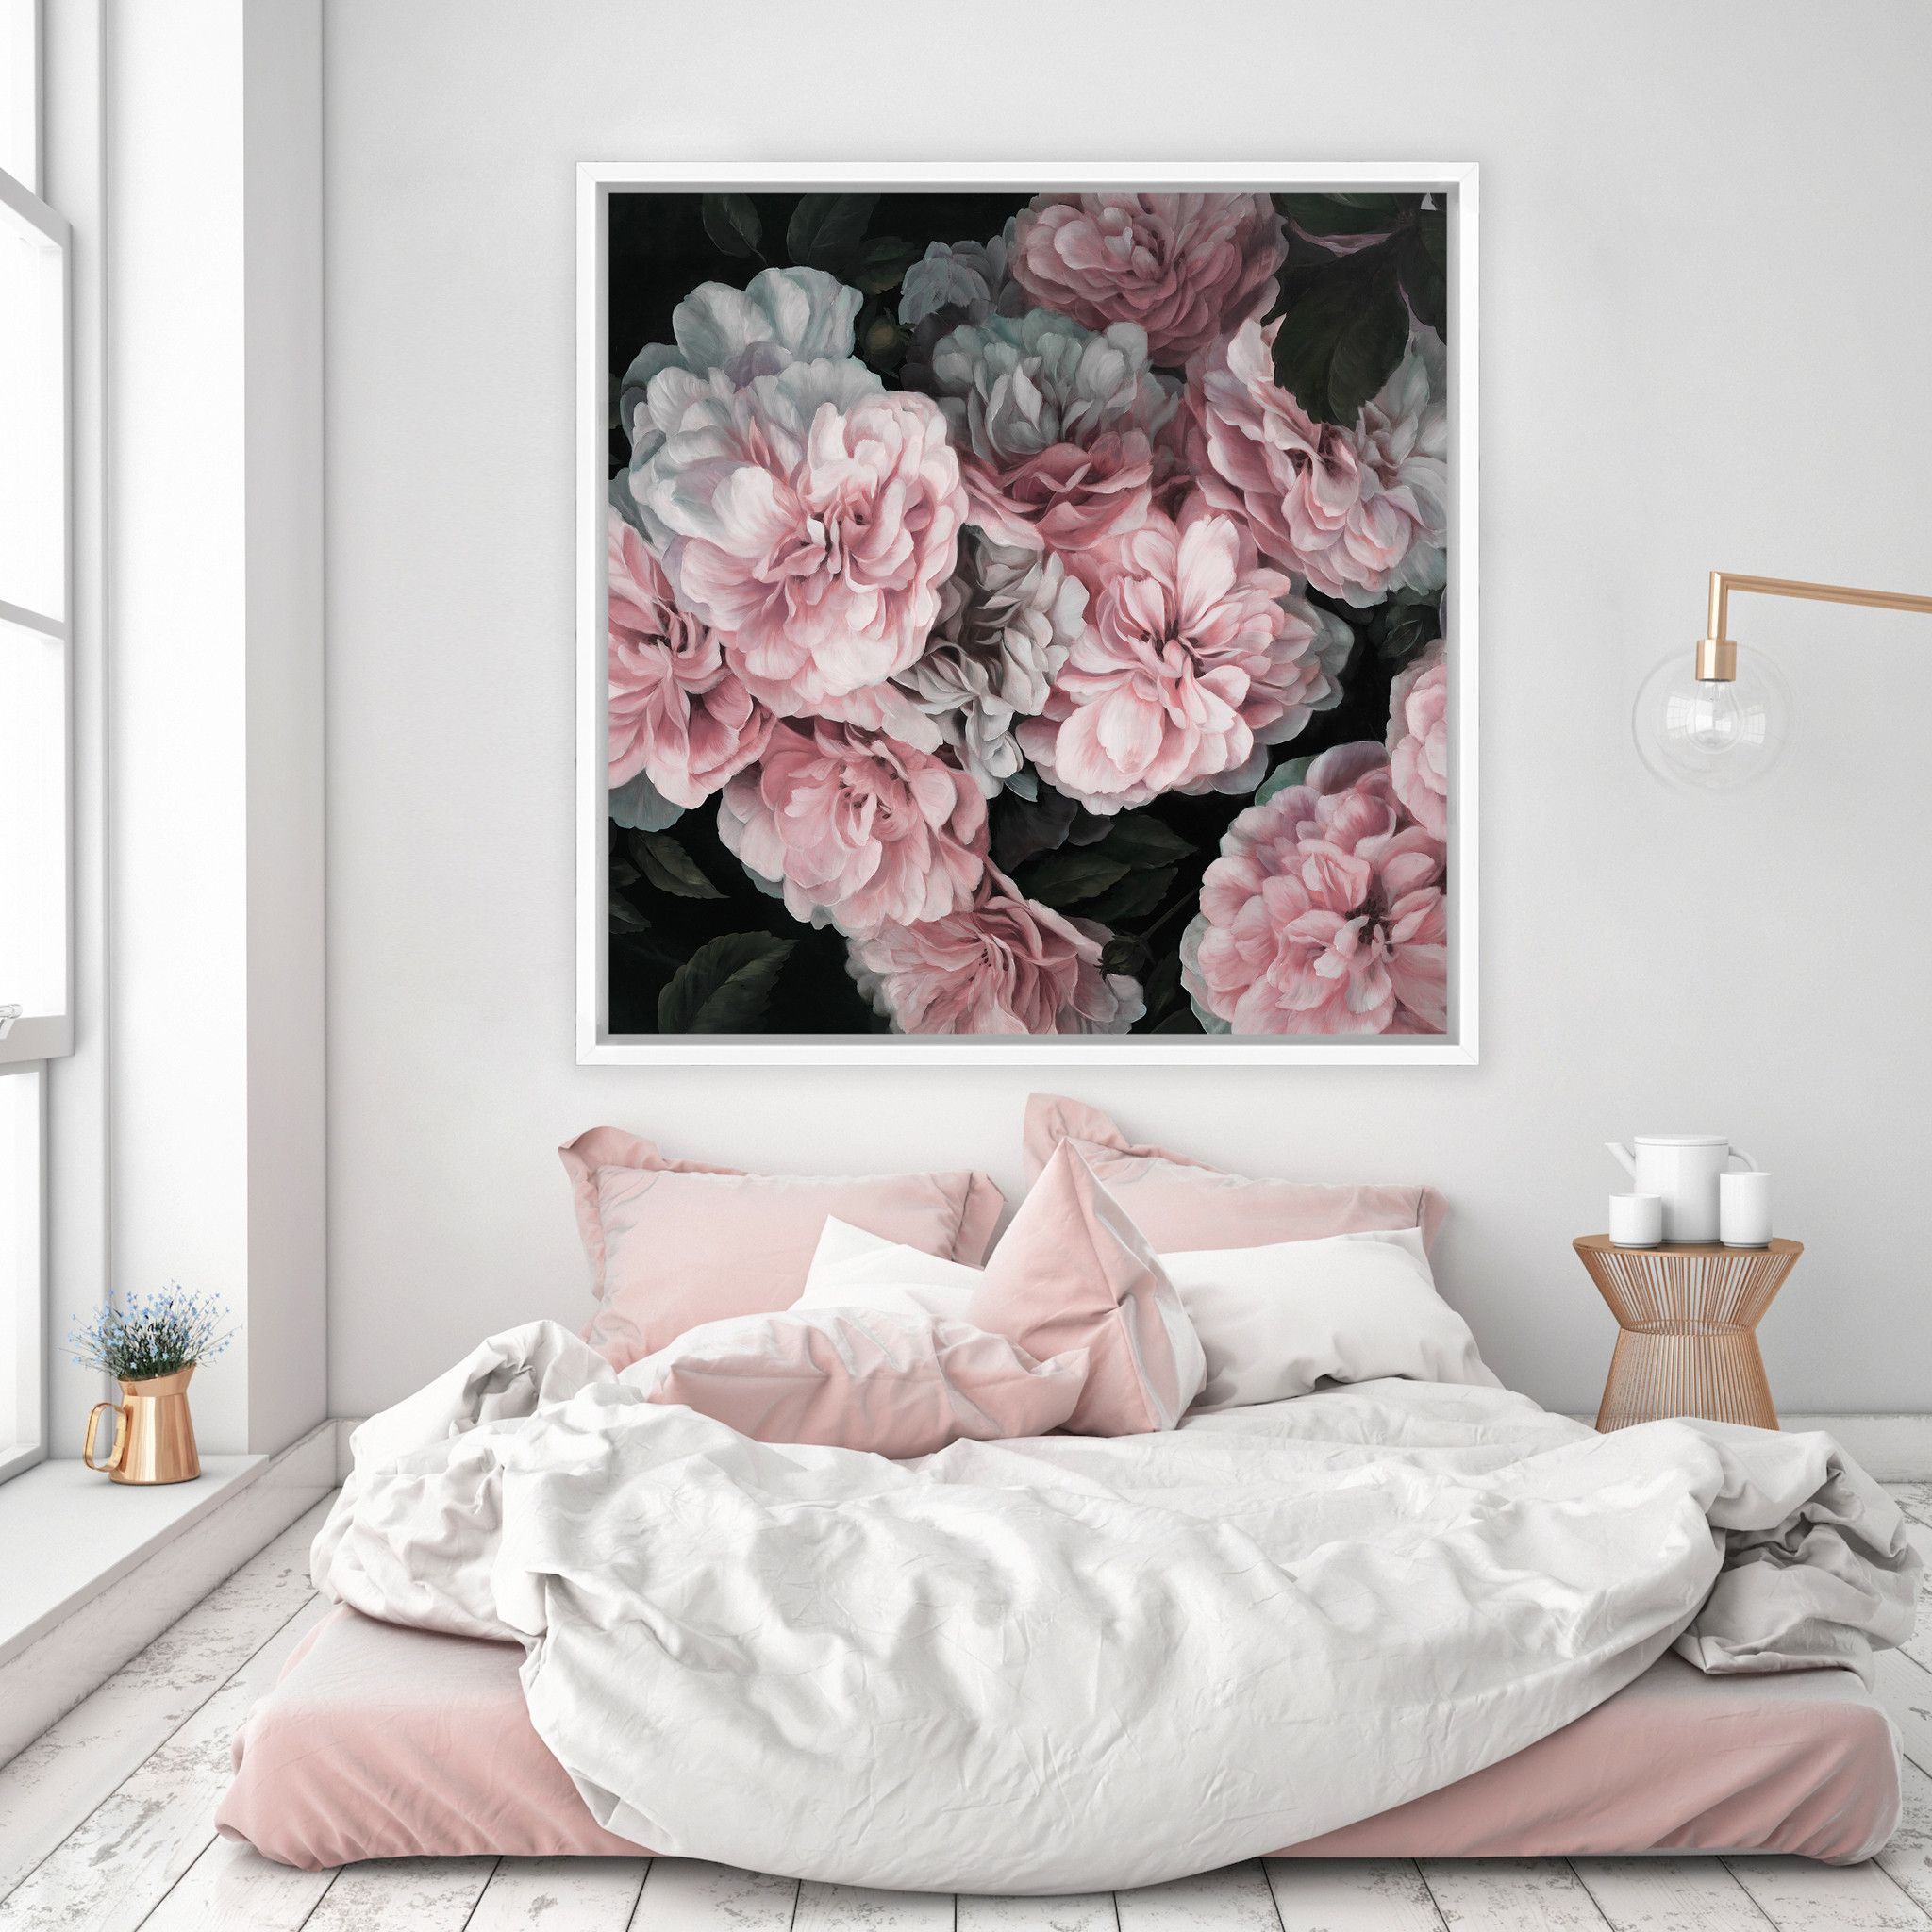 FLOWERS AND FLOWER PRINTS